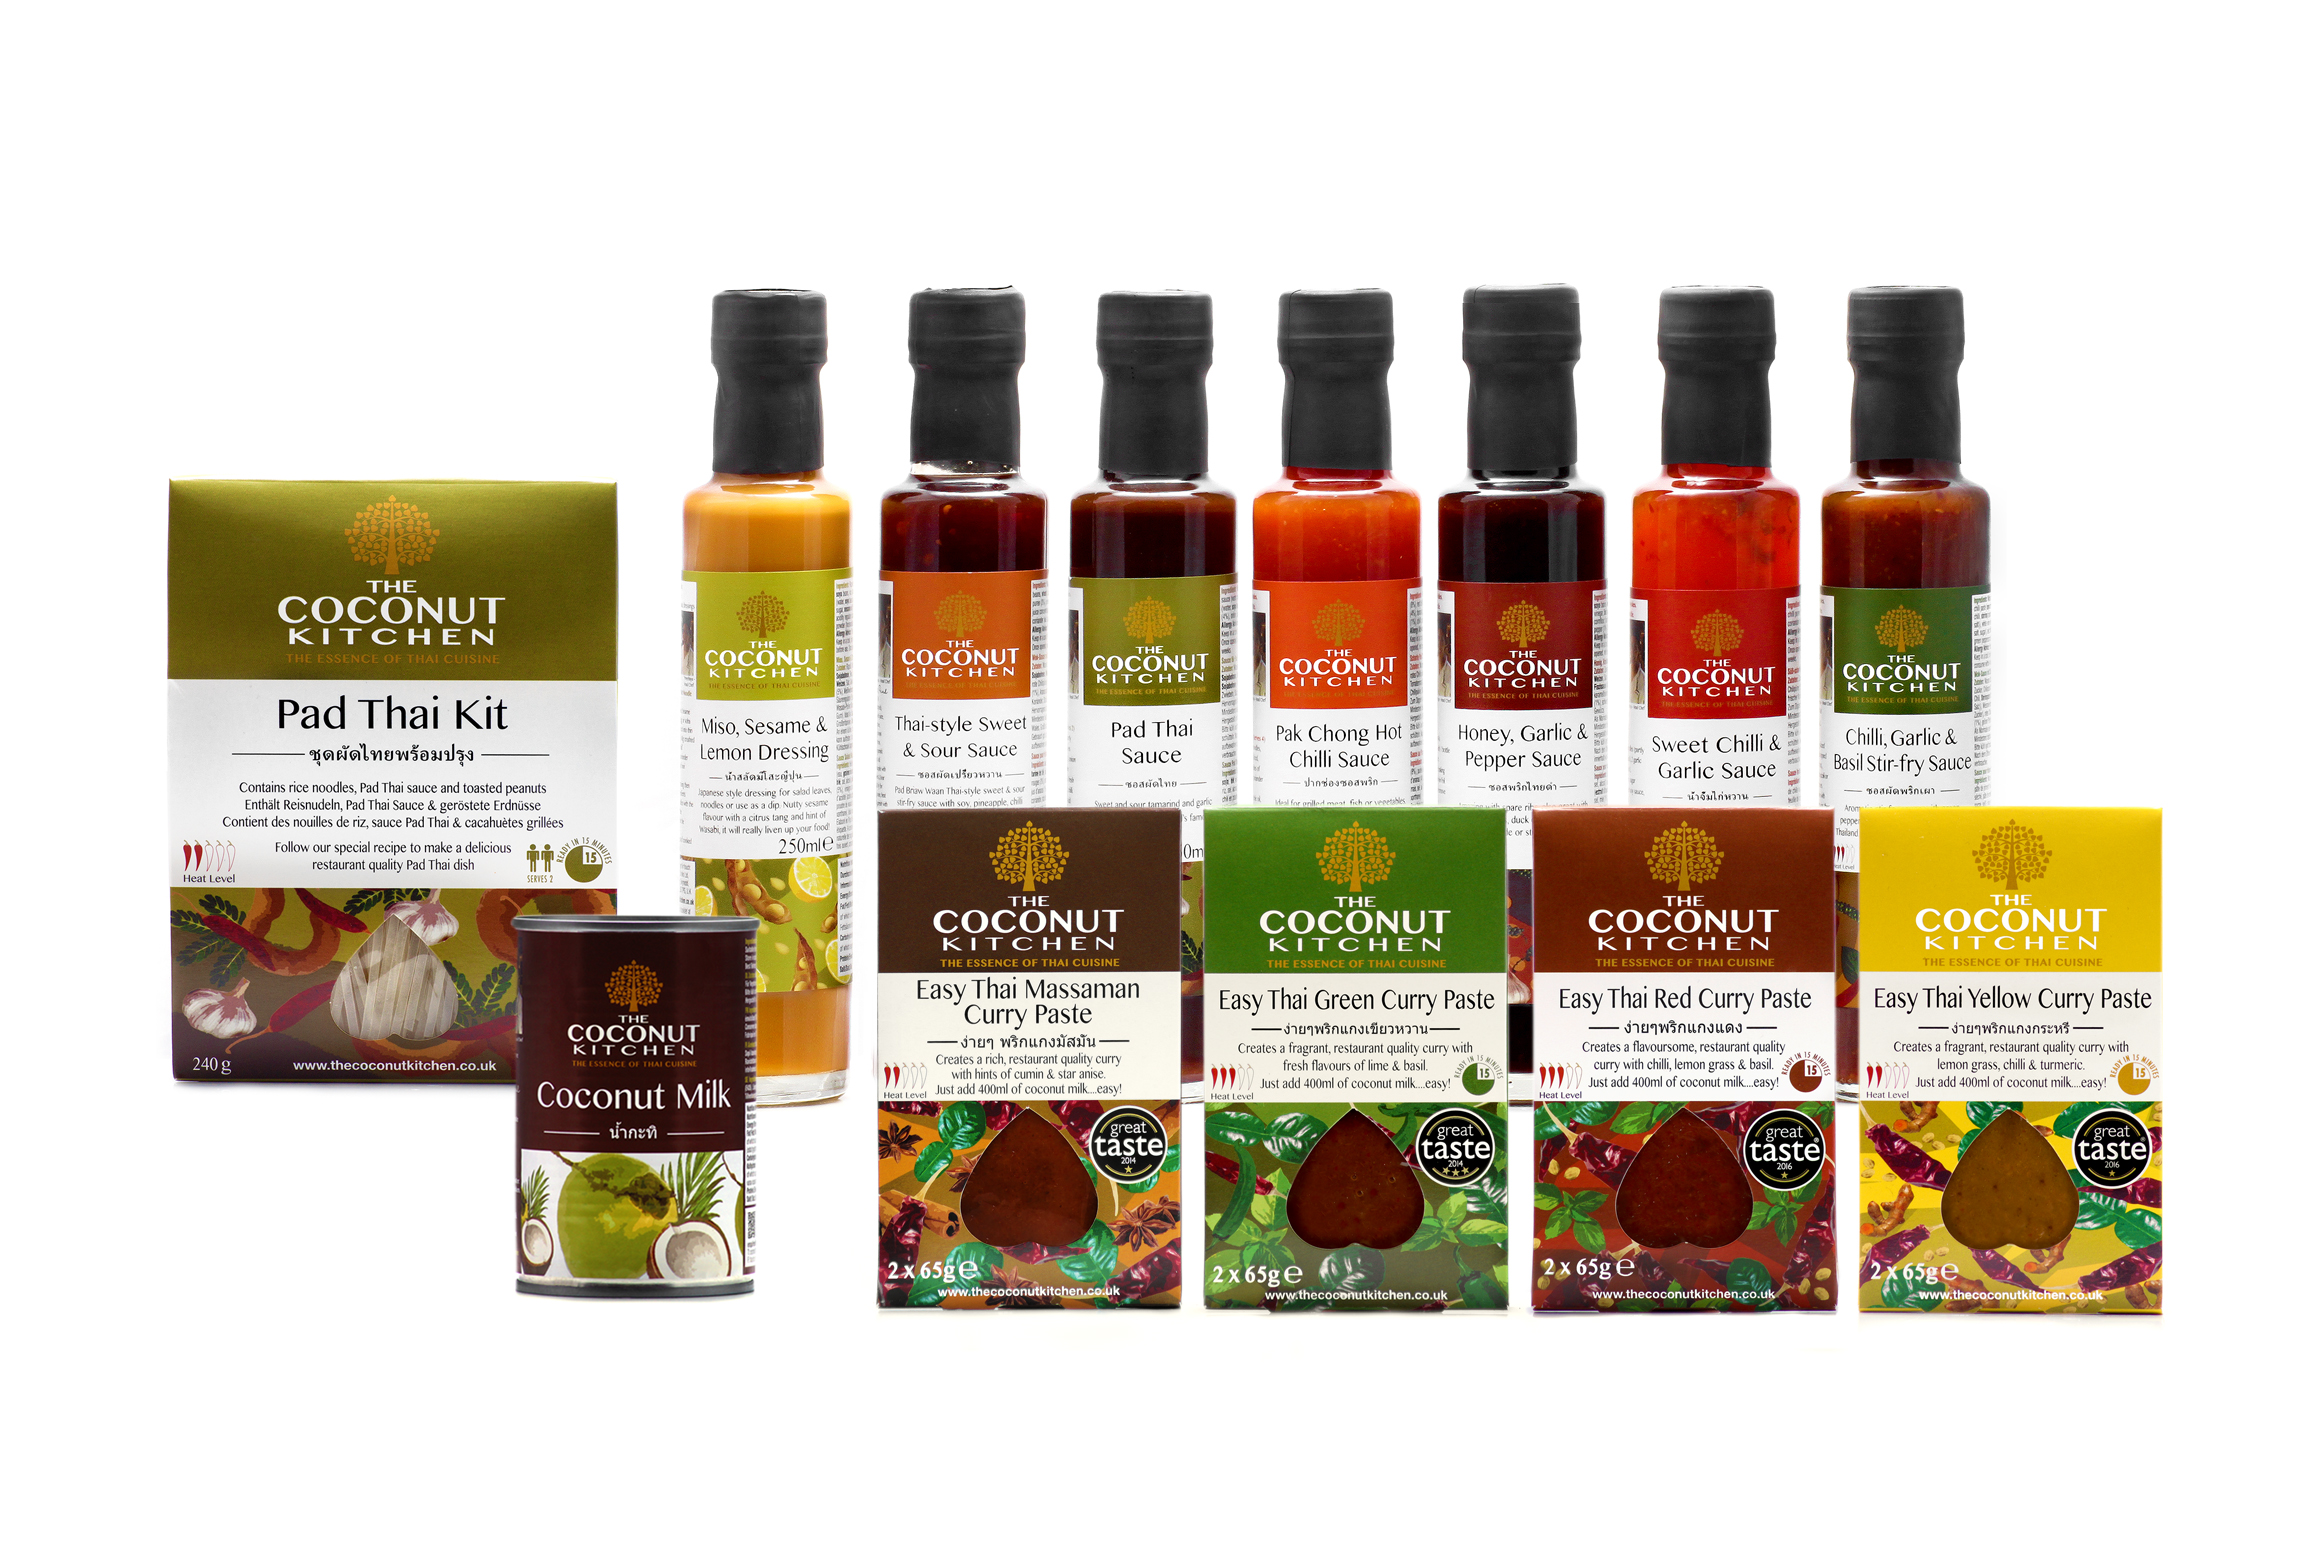 Award winning Thai curry pastes, stirfry sauces and dipping sauces. Pad Thai Kit thats also Vegan. Good quality coconut milk